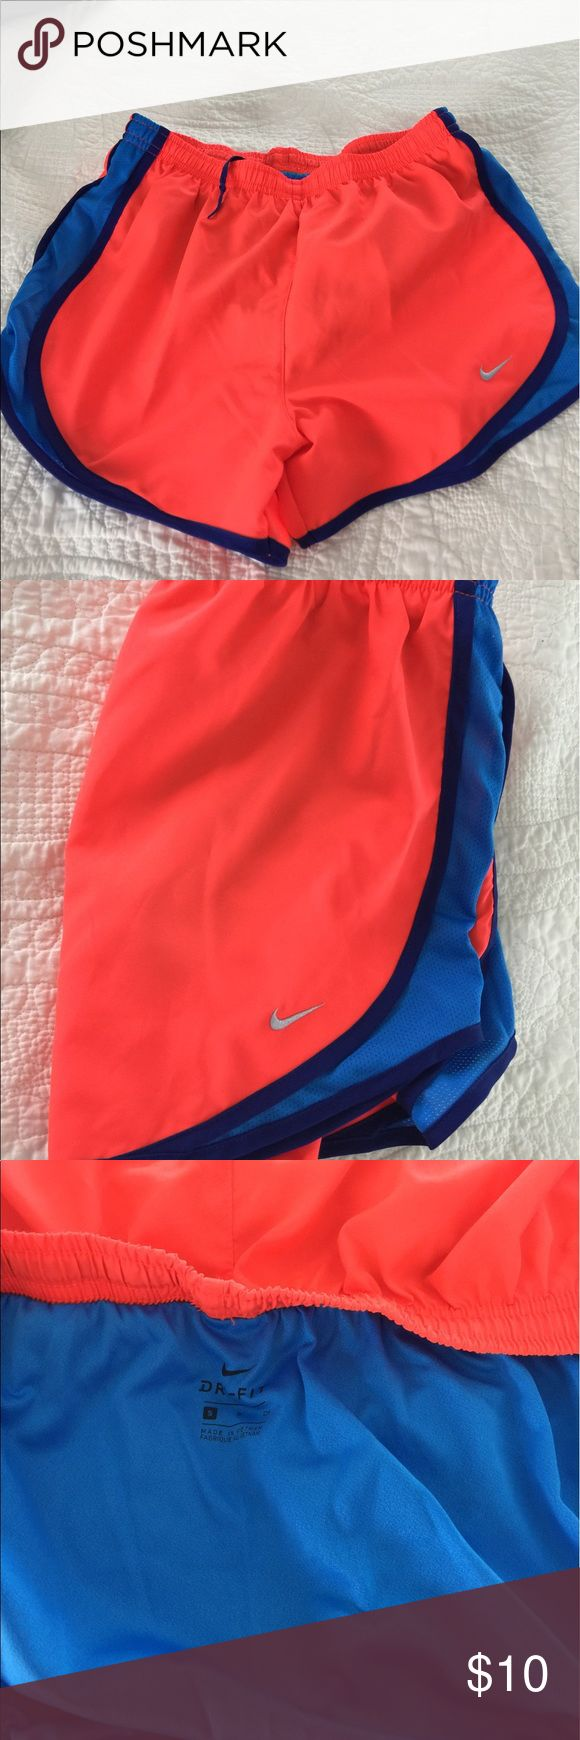 Nike Running Short W/Mesh Underwear NWOT Bought these at the Nike Store and popped tags without trying on. Too big..Never worn Nike Running Shorts. Cute colors for the summer. Nike Shorts